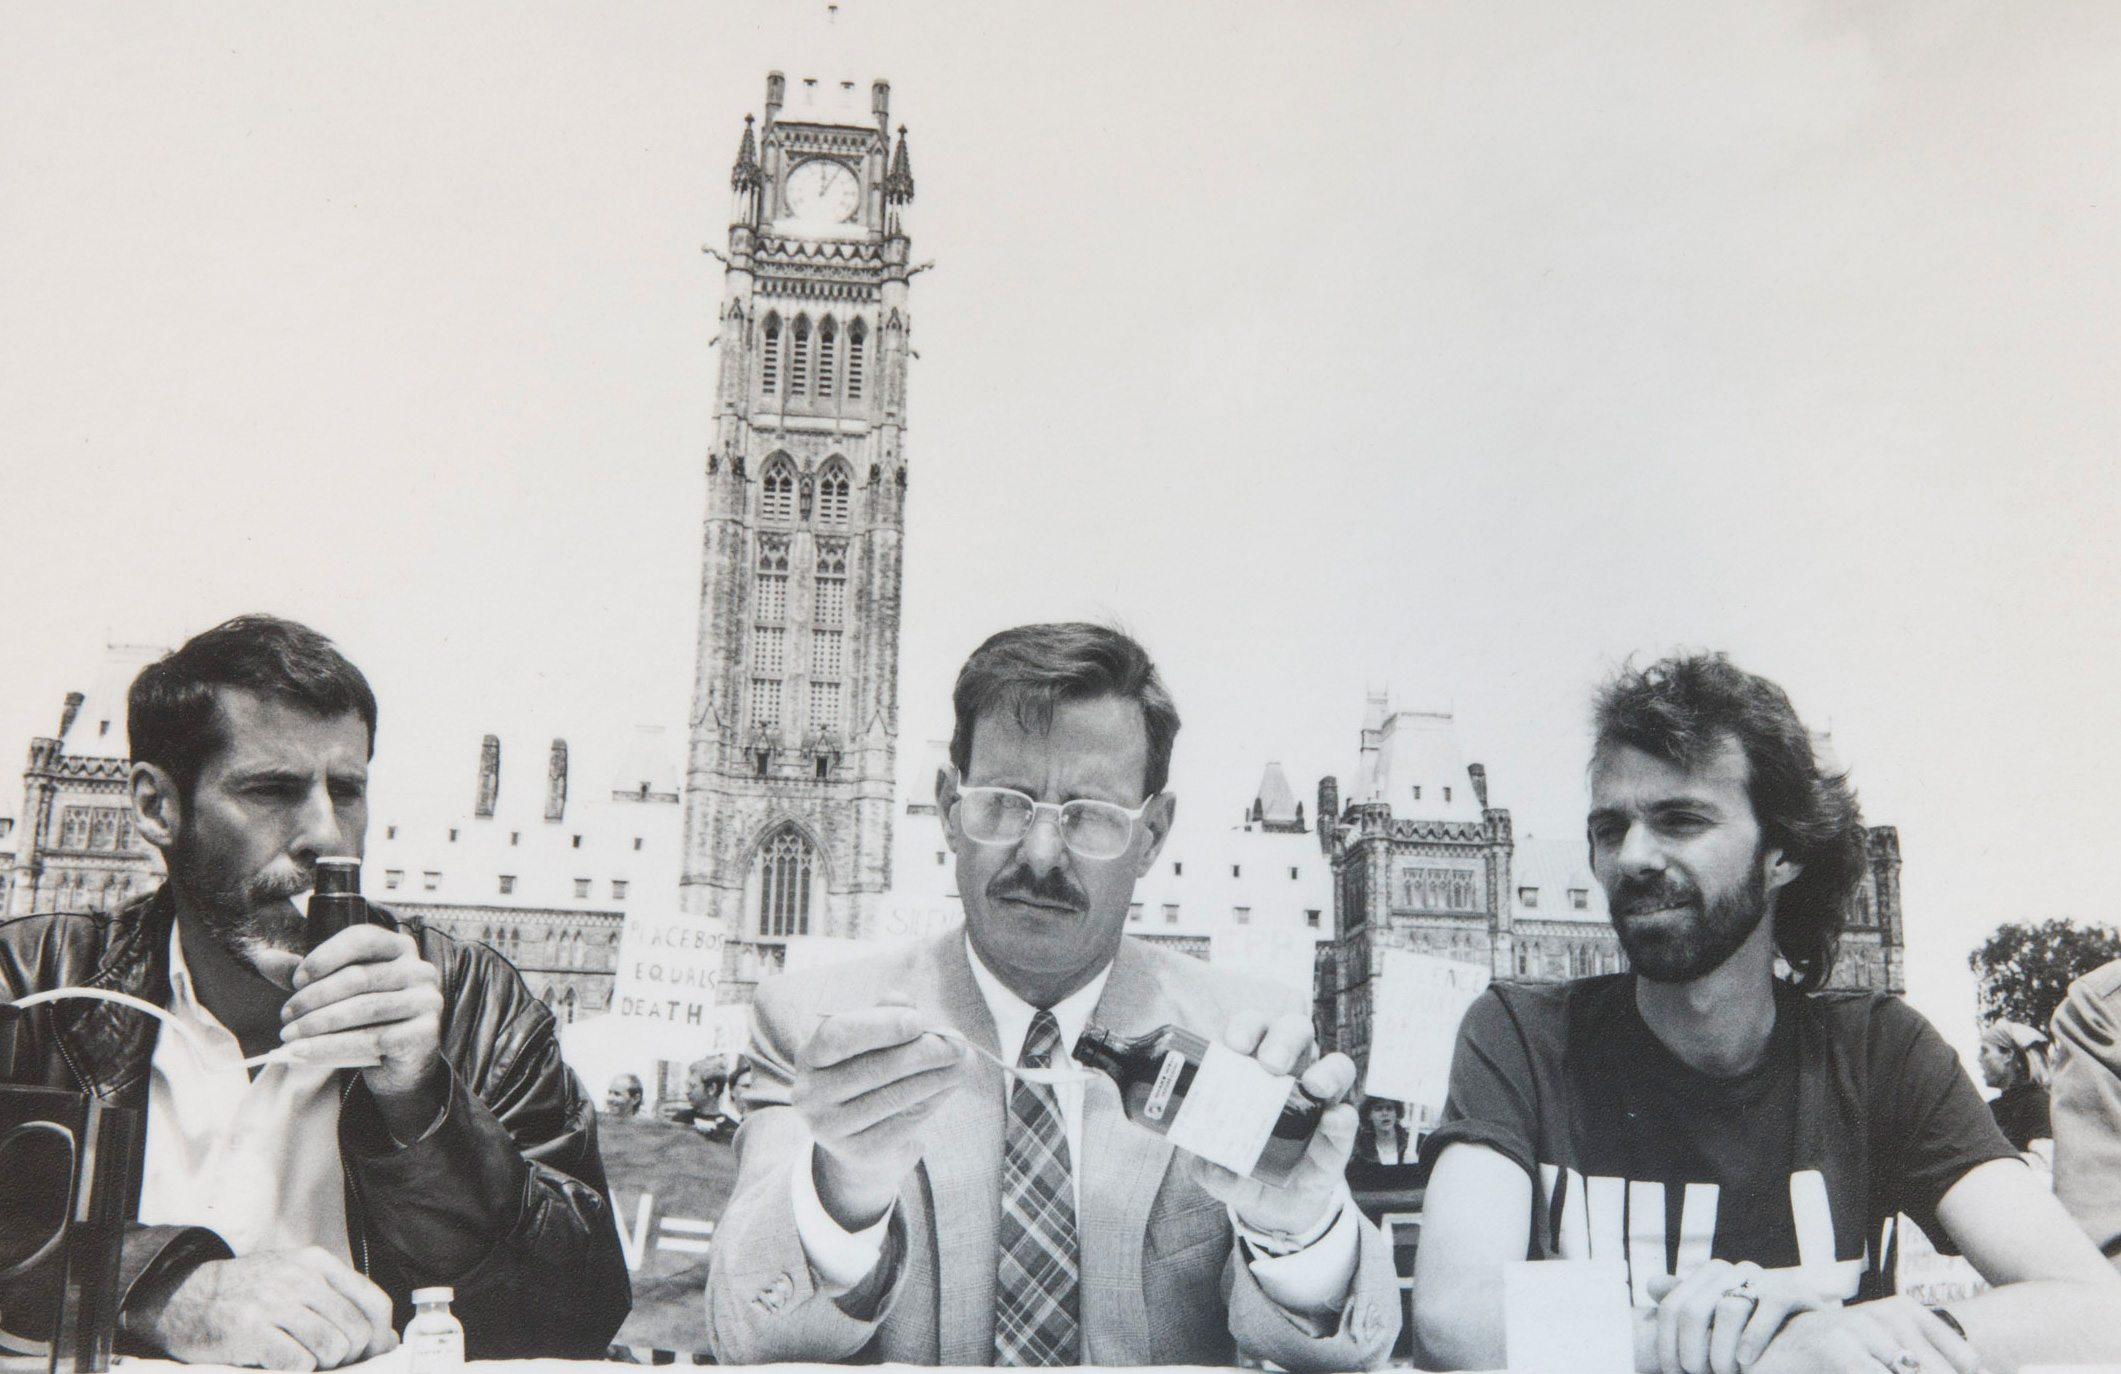 PARLIAMENT HILL PROTEST — From left: in 1988, Bill Greenway, Michael Lynch, and James Thomas — members of AIDS Action Now — demonstrated the government's inaction in making experimental HIV/AIDS drugs available by taking four of the 24 drugs already available elsewhere in the world. Photo: Colin Rowe, courtesy of ACO